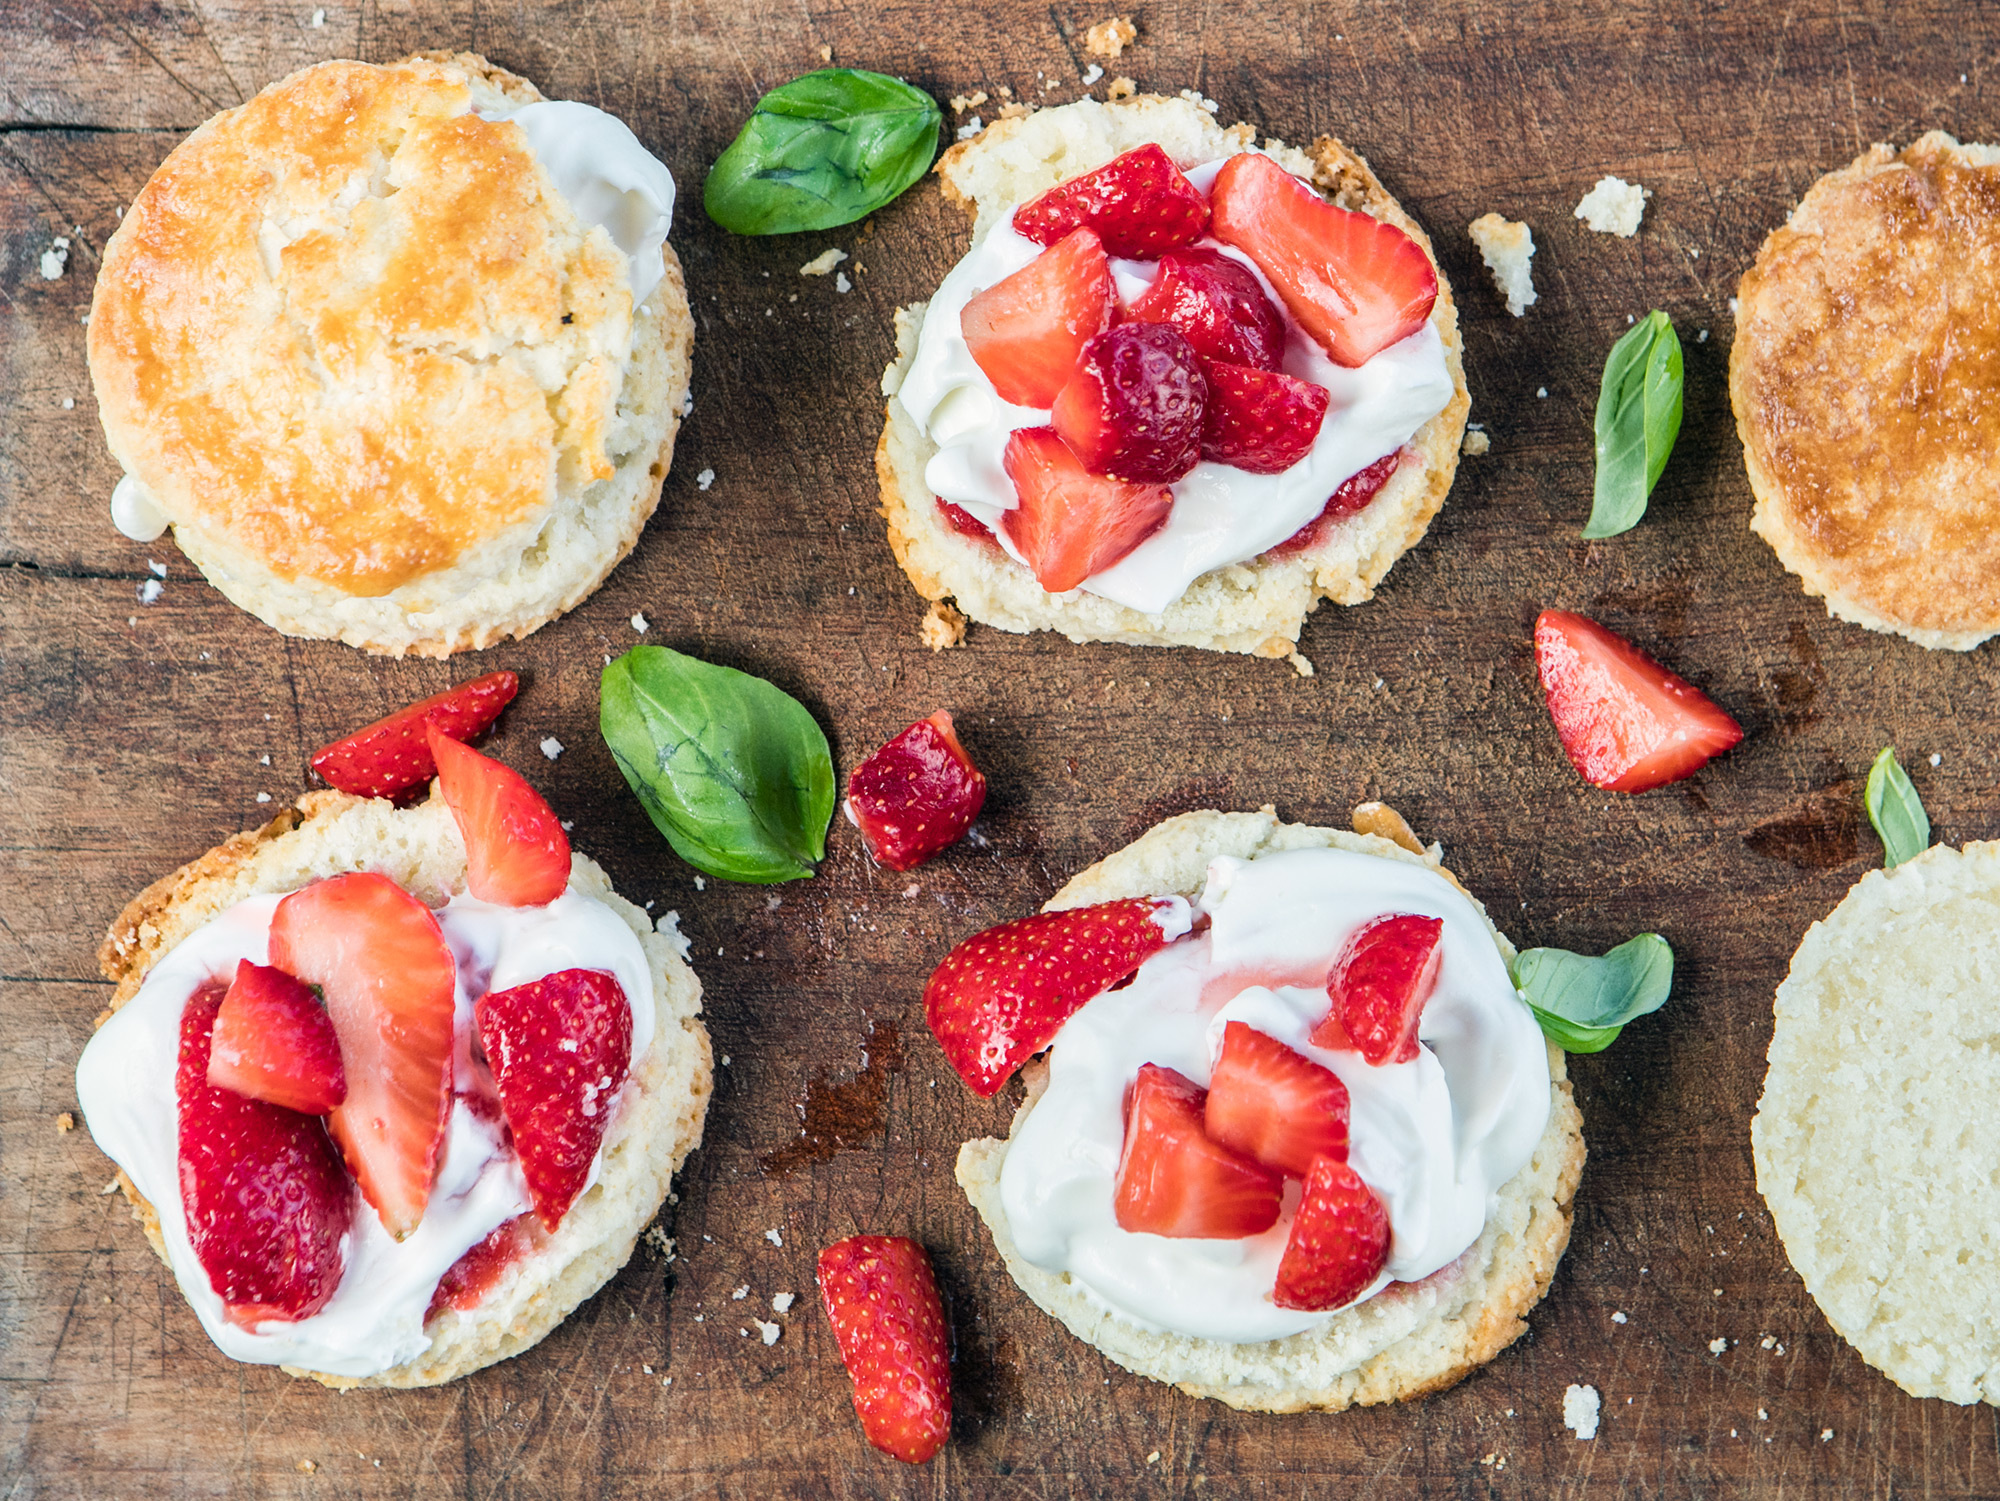 Strawberry Shortcakes: Tortini con panna e fragole